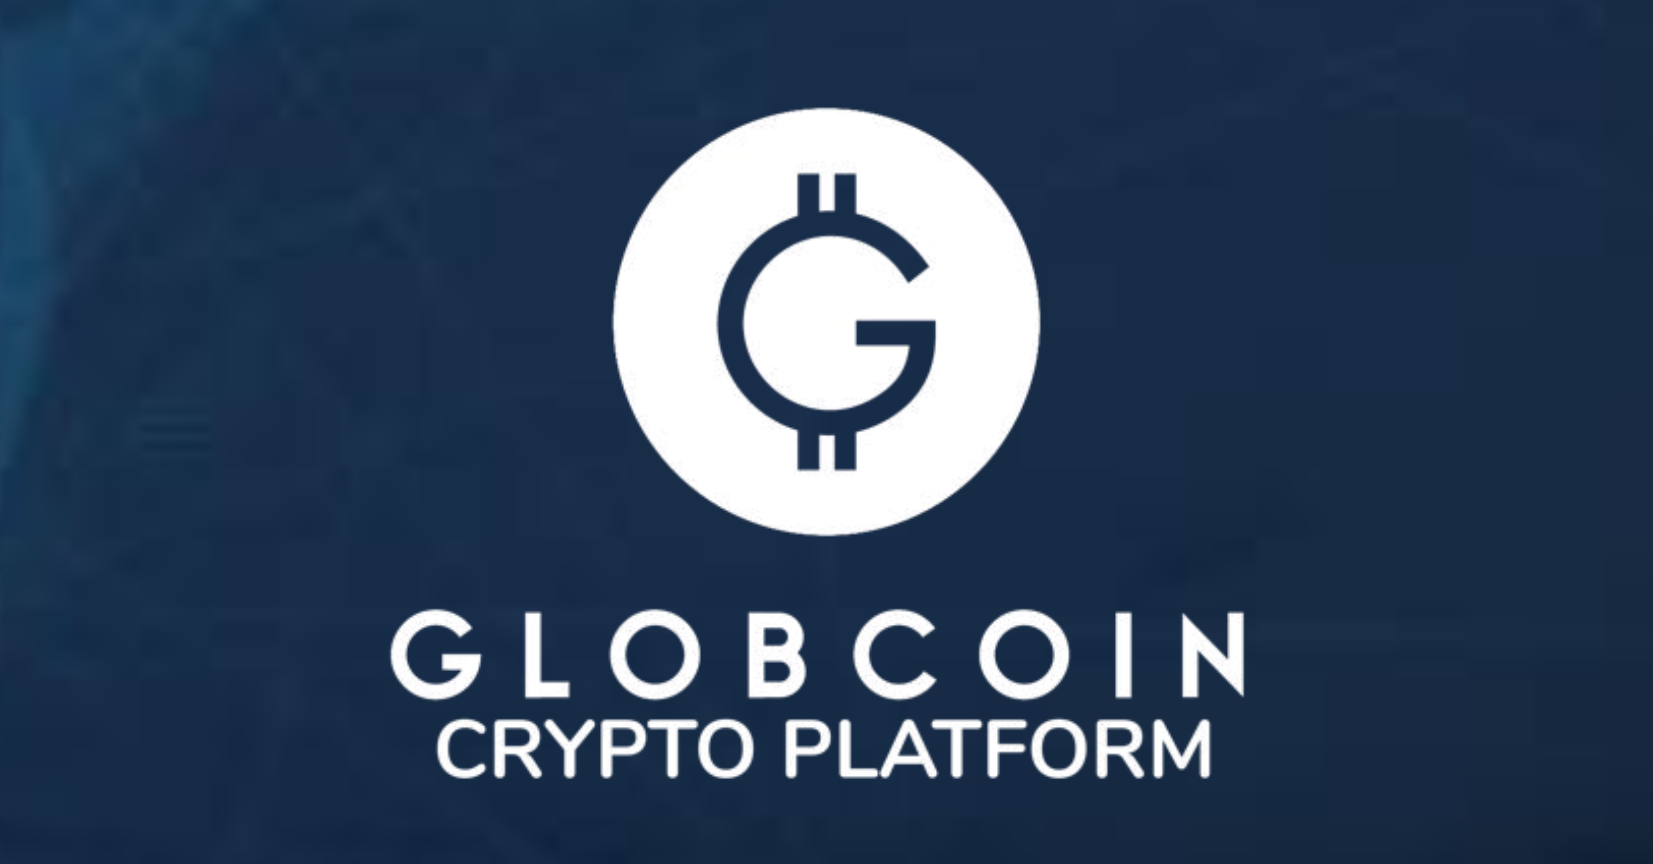 globcoinio.png